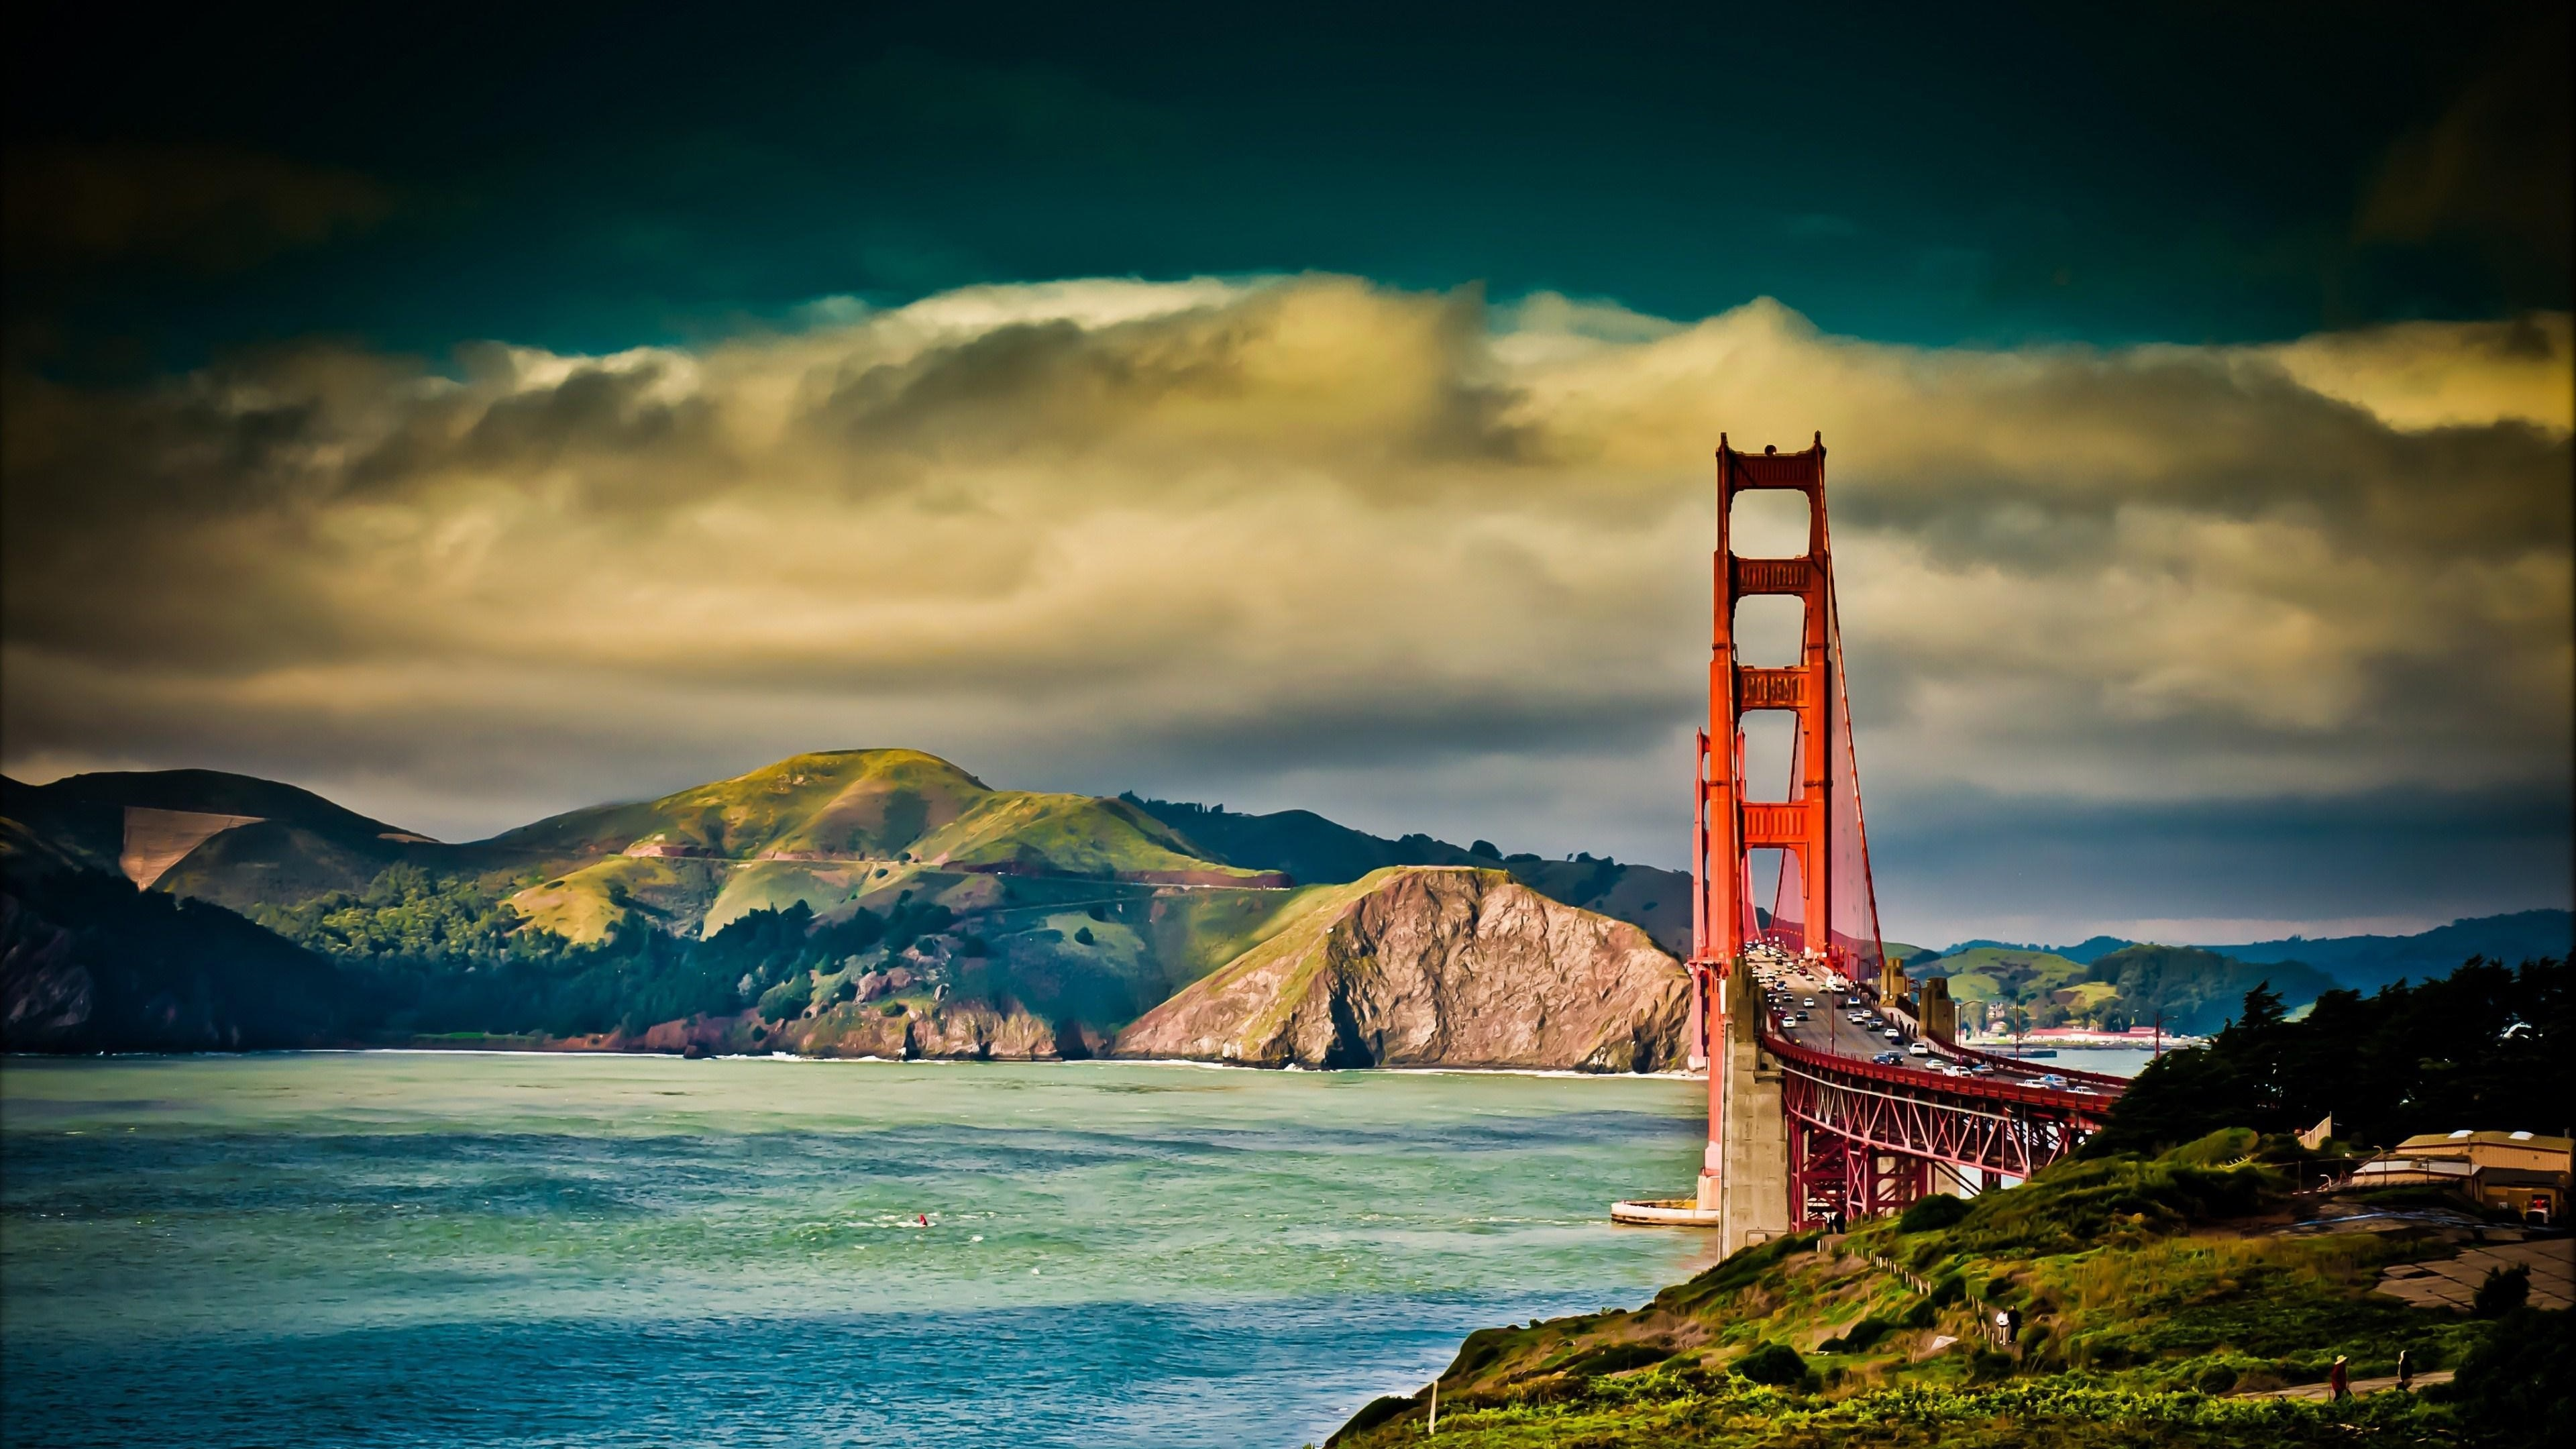 Golden Gate Wallpaper 4k Ultra Hd Collections 4k Ultra 4k